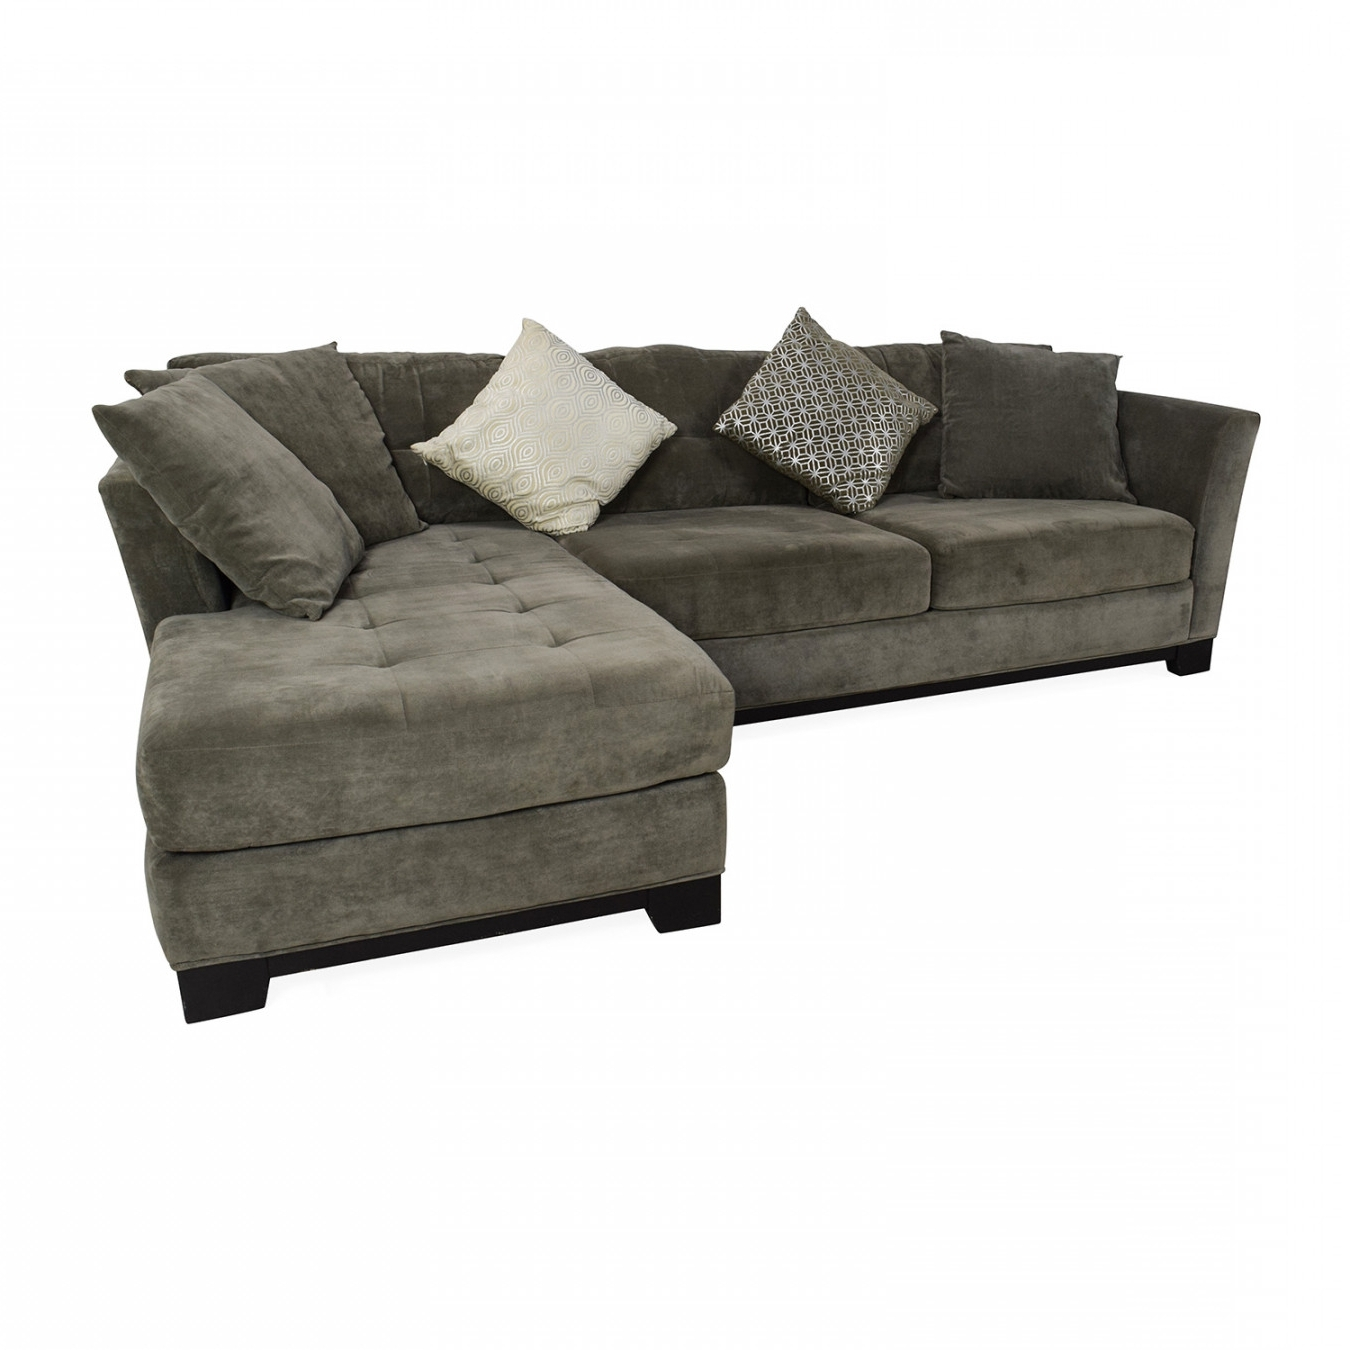 Best And Newest Sofas: Oversized Sectional With Chaise (View 5 of 15)